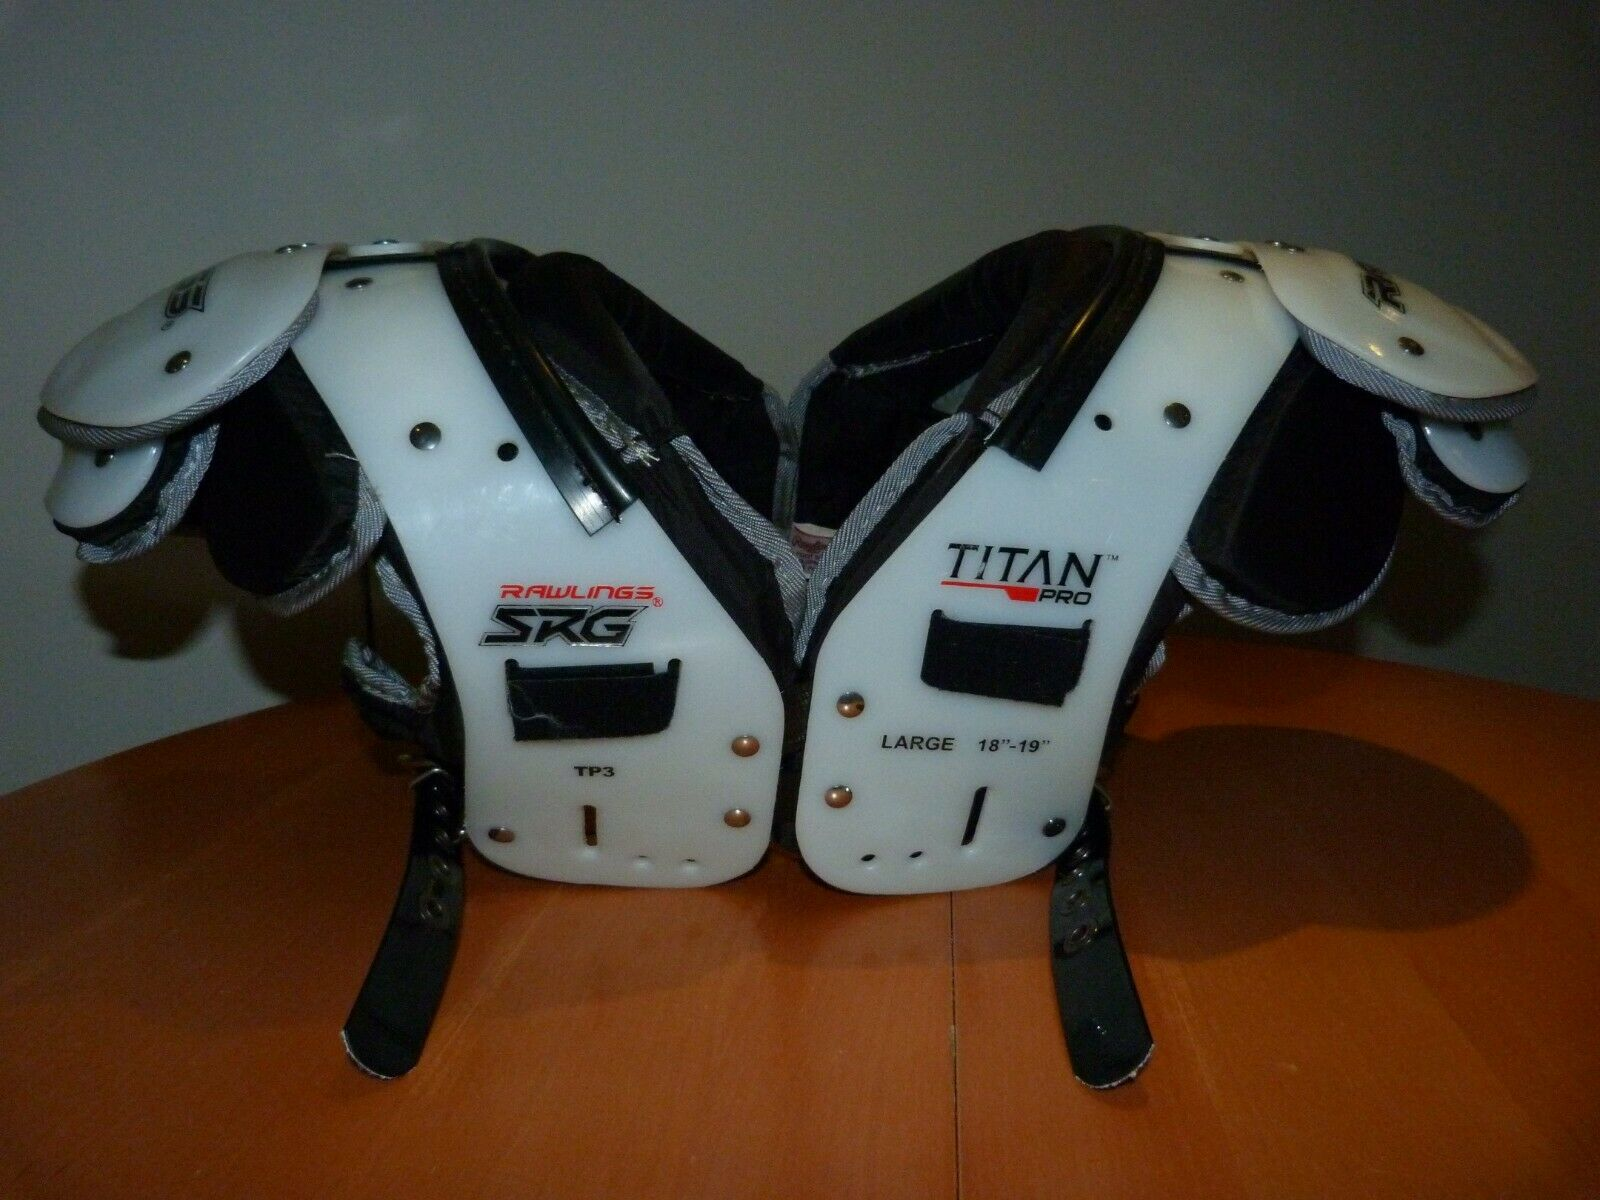 Schulterpad Shoulderpad Rawlings SRG Titan Pro Large 18-19 TP3 sehr gut Football